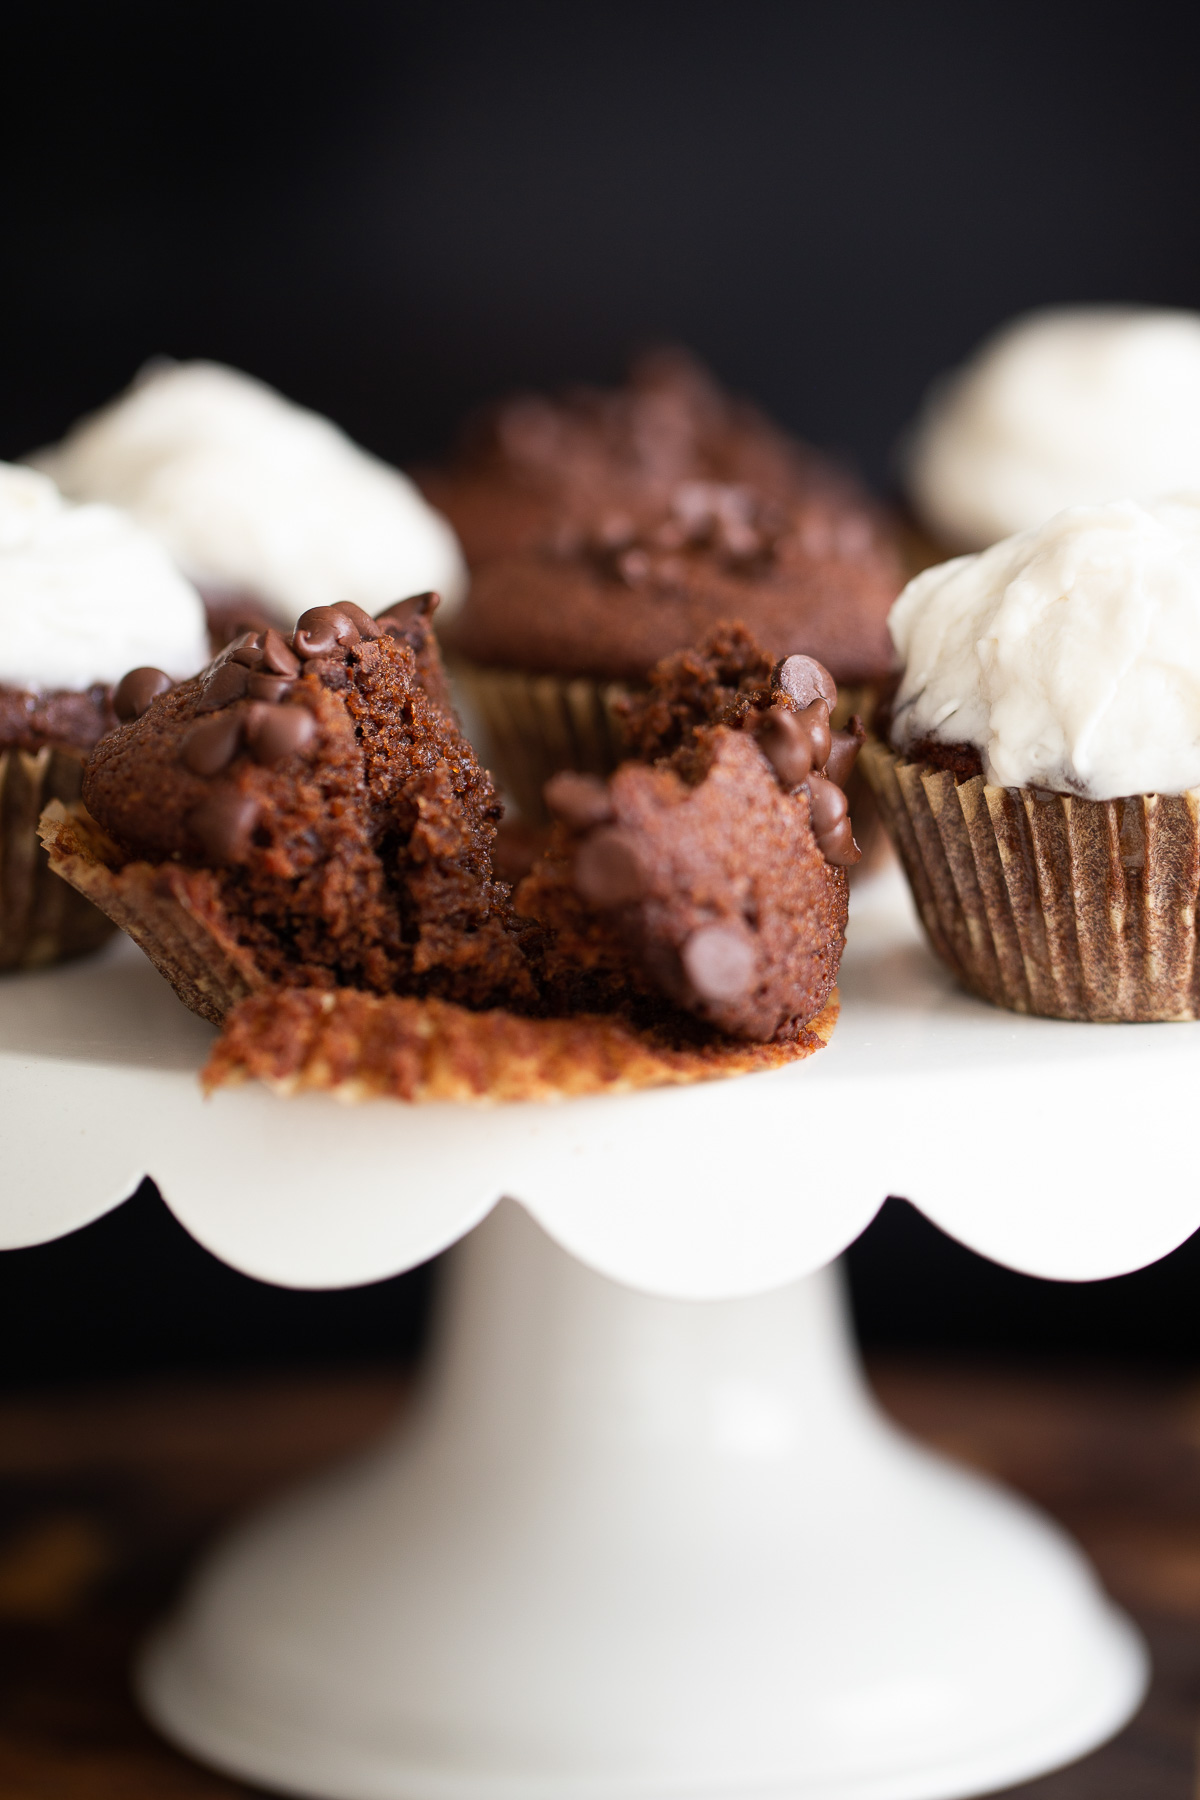 moist vegan glutenfree chocolate muffin on a cake stand broken in half to reveal moist crumb